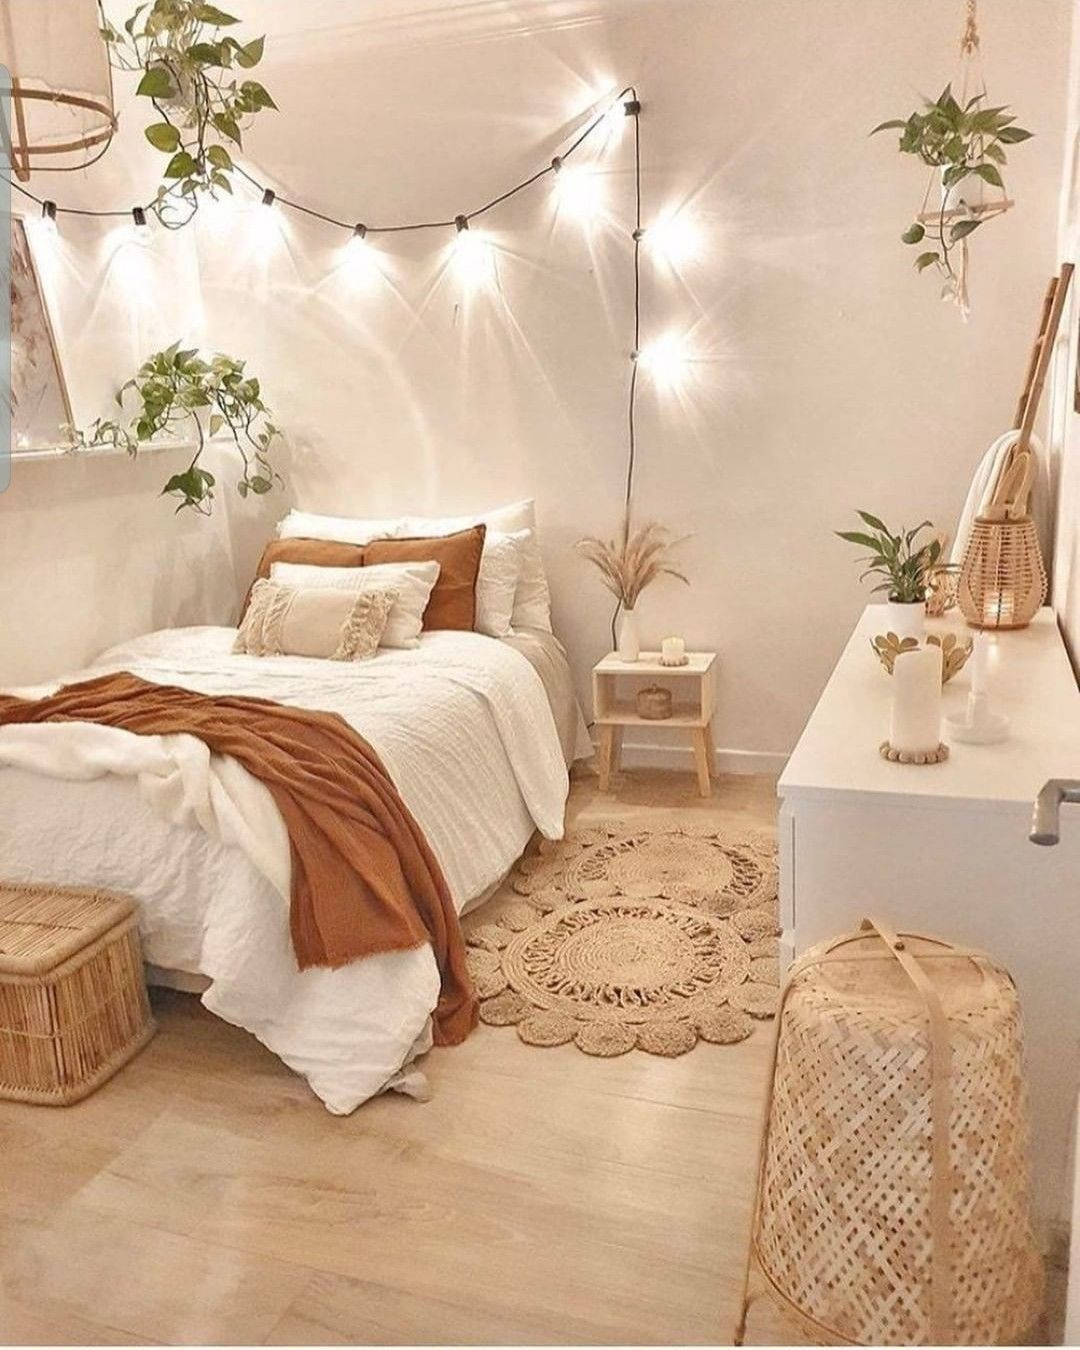 47+ Chambre cocooning ado fille trends